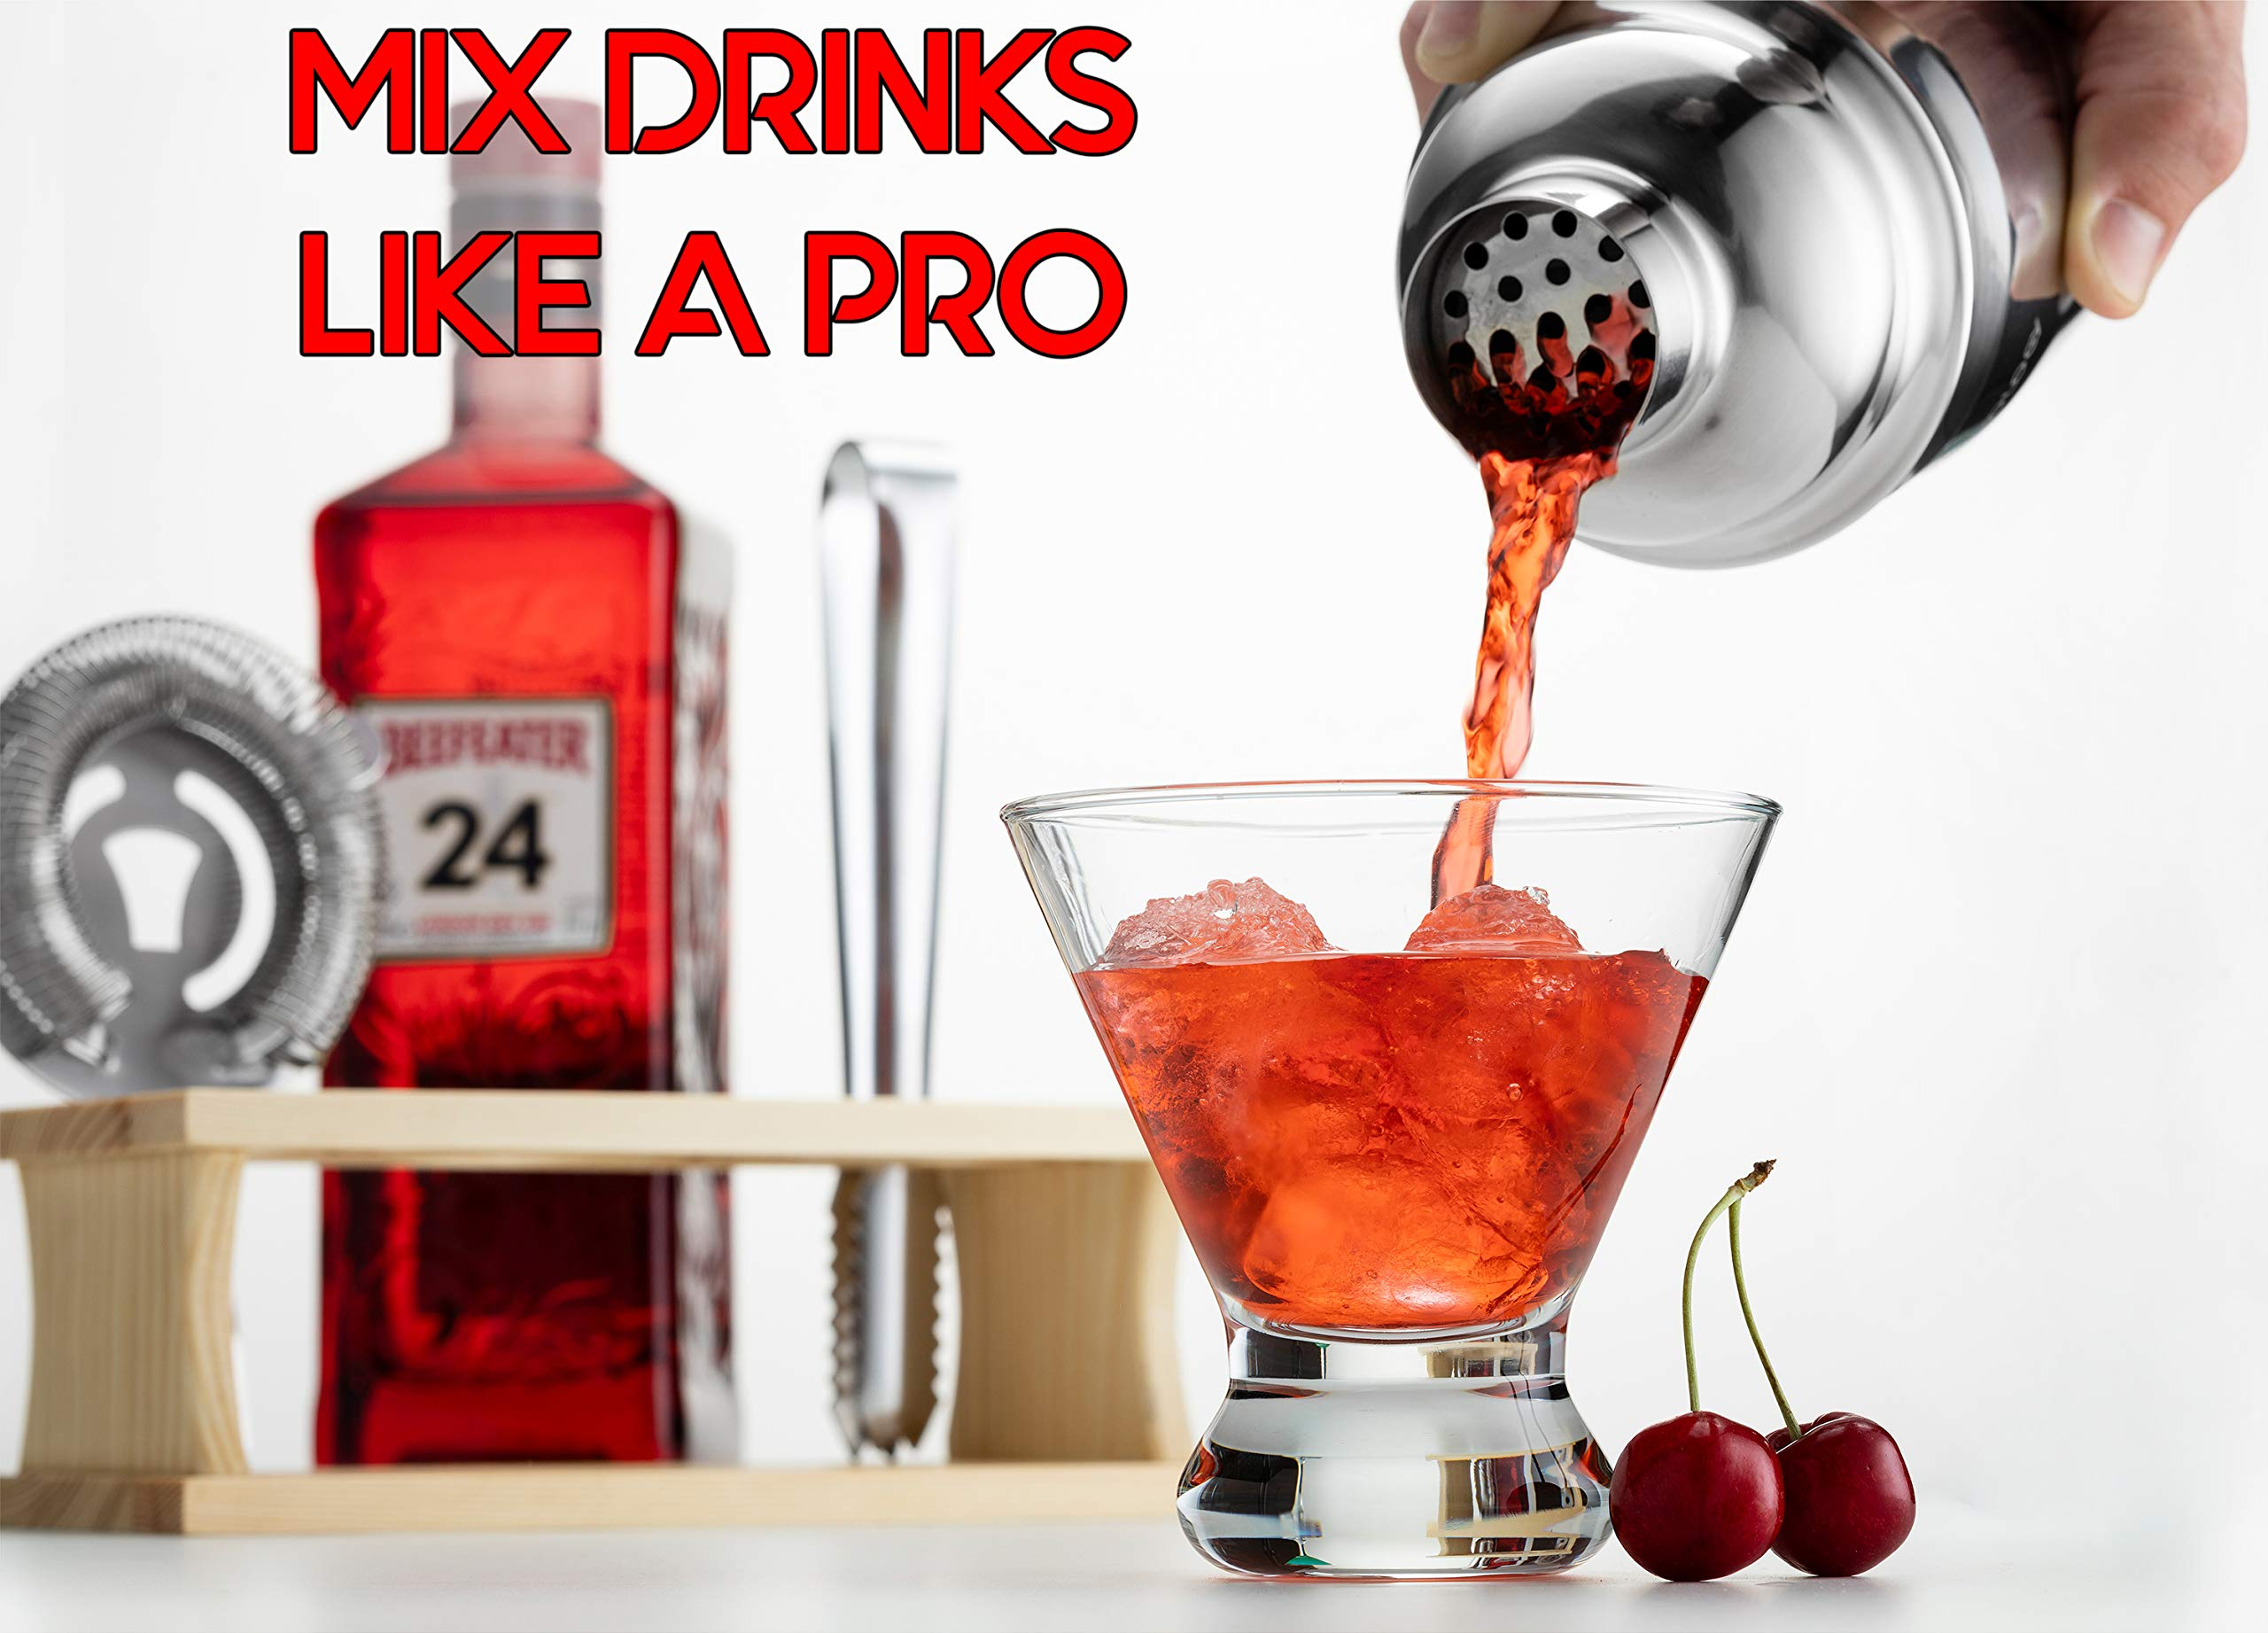 Mixology Bartender Kit with Stand | Bar Set Cocktail Shaker Set for Drink Mixing - Bar Tools: Martini Shaker, Jigger, Strainer, Bar Mixer Spoon, Tongs, Bottle Opener | Best Bartender Kit for Beginners by Modern Mixology (Image #3)